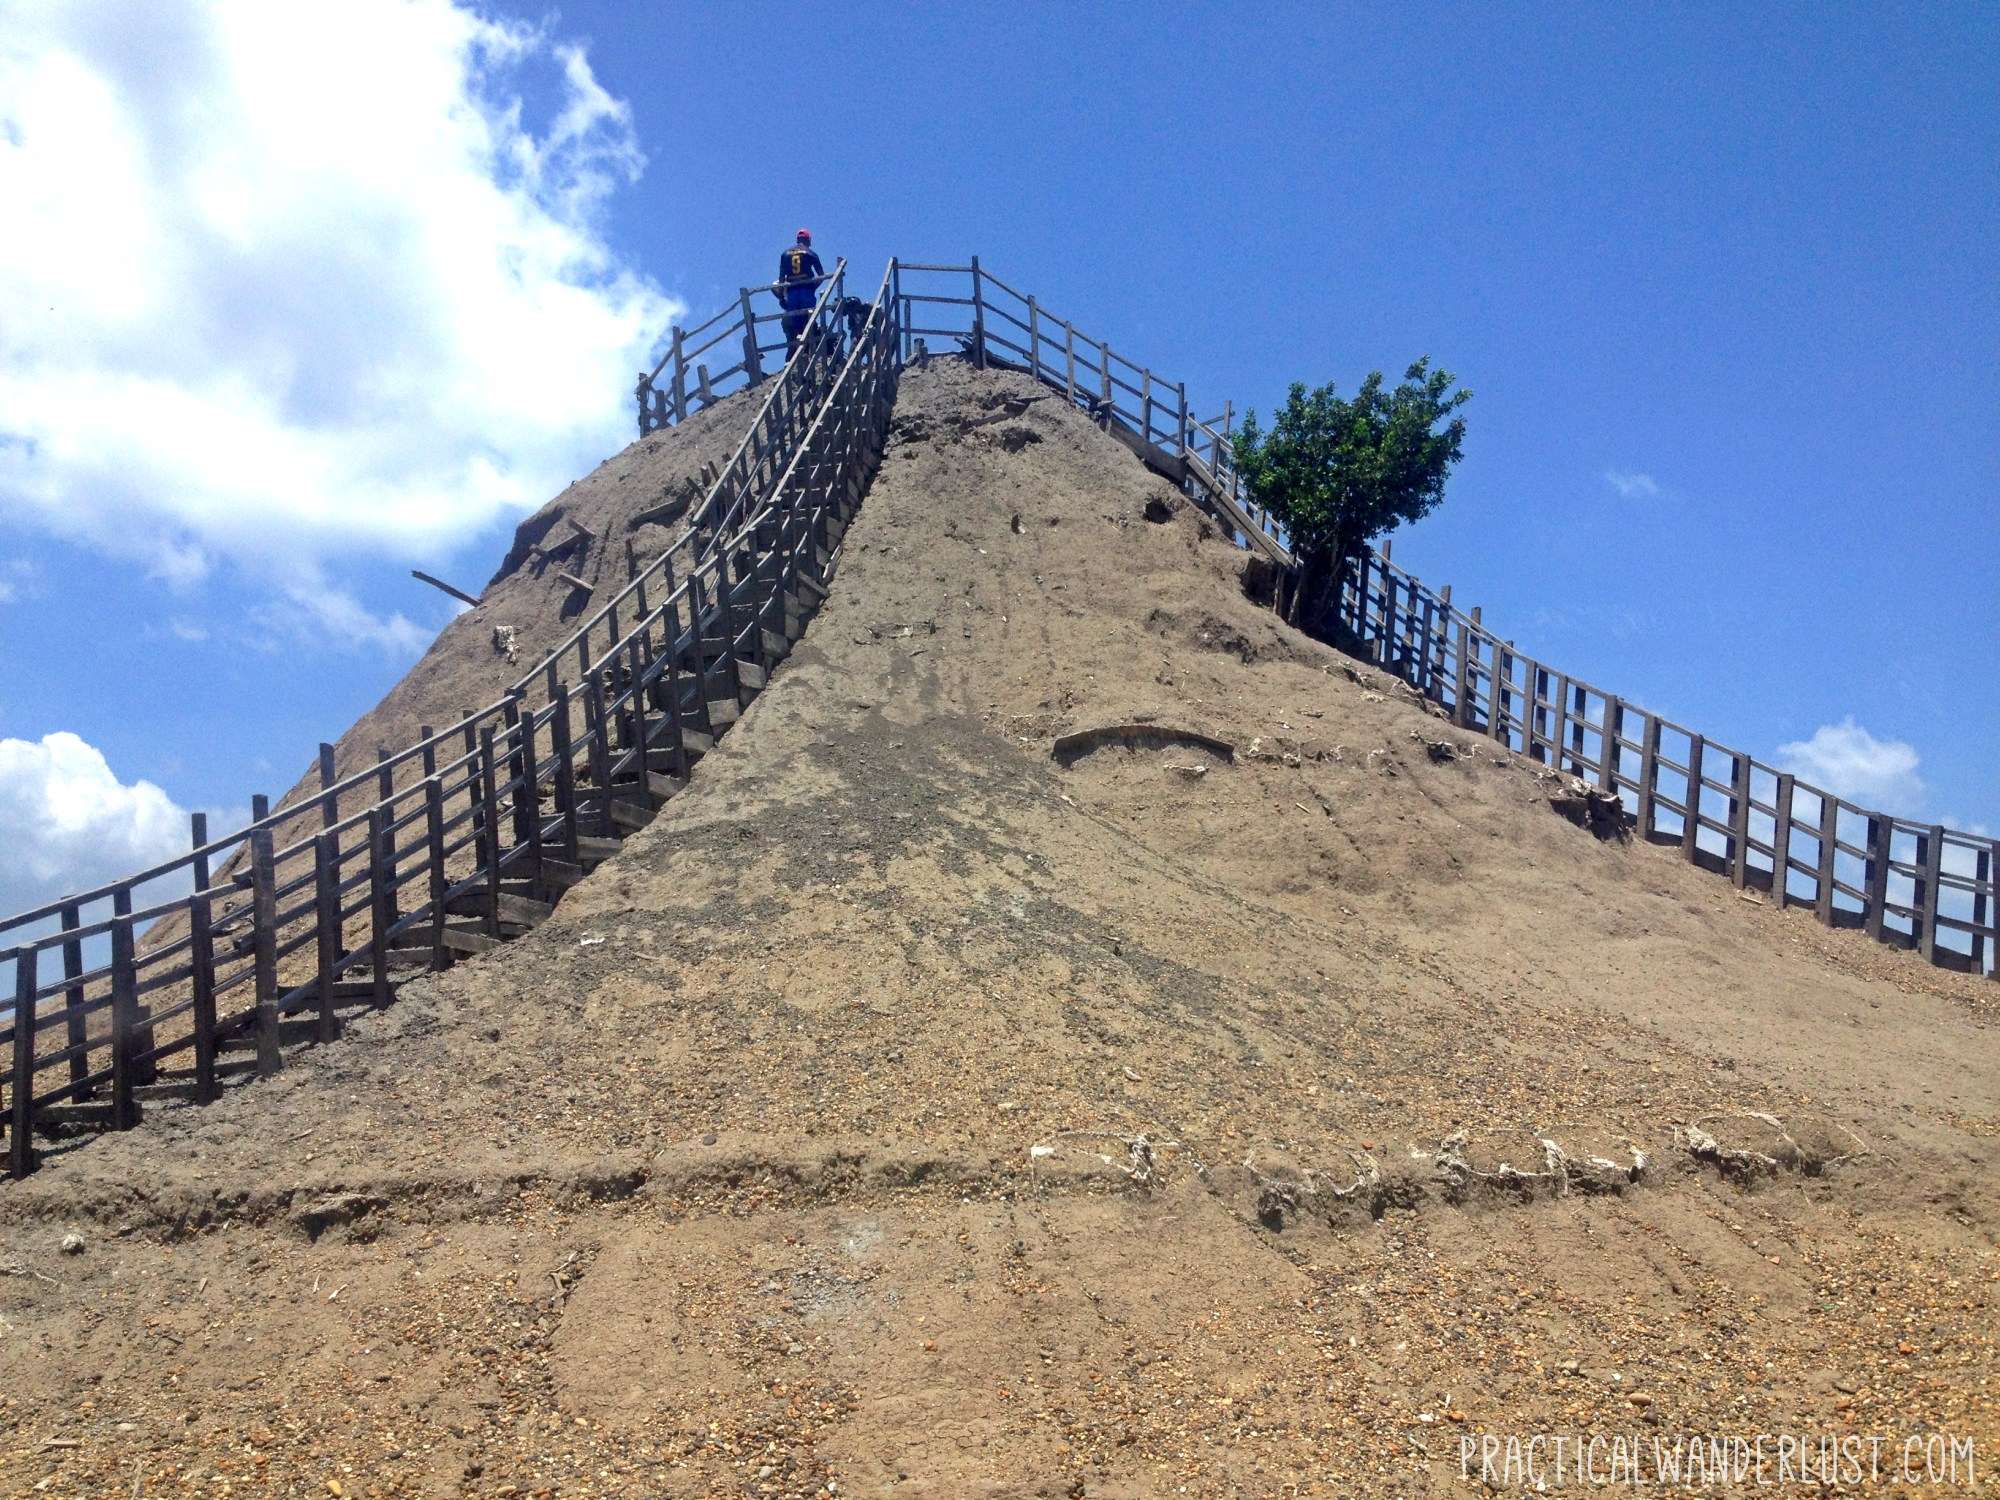 Volcan Totumo, a dormant volcano in which you can take mud baths, outside of Cartagena, Colombia.